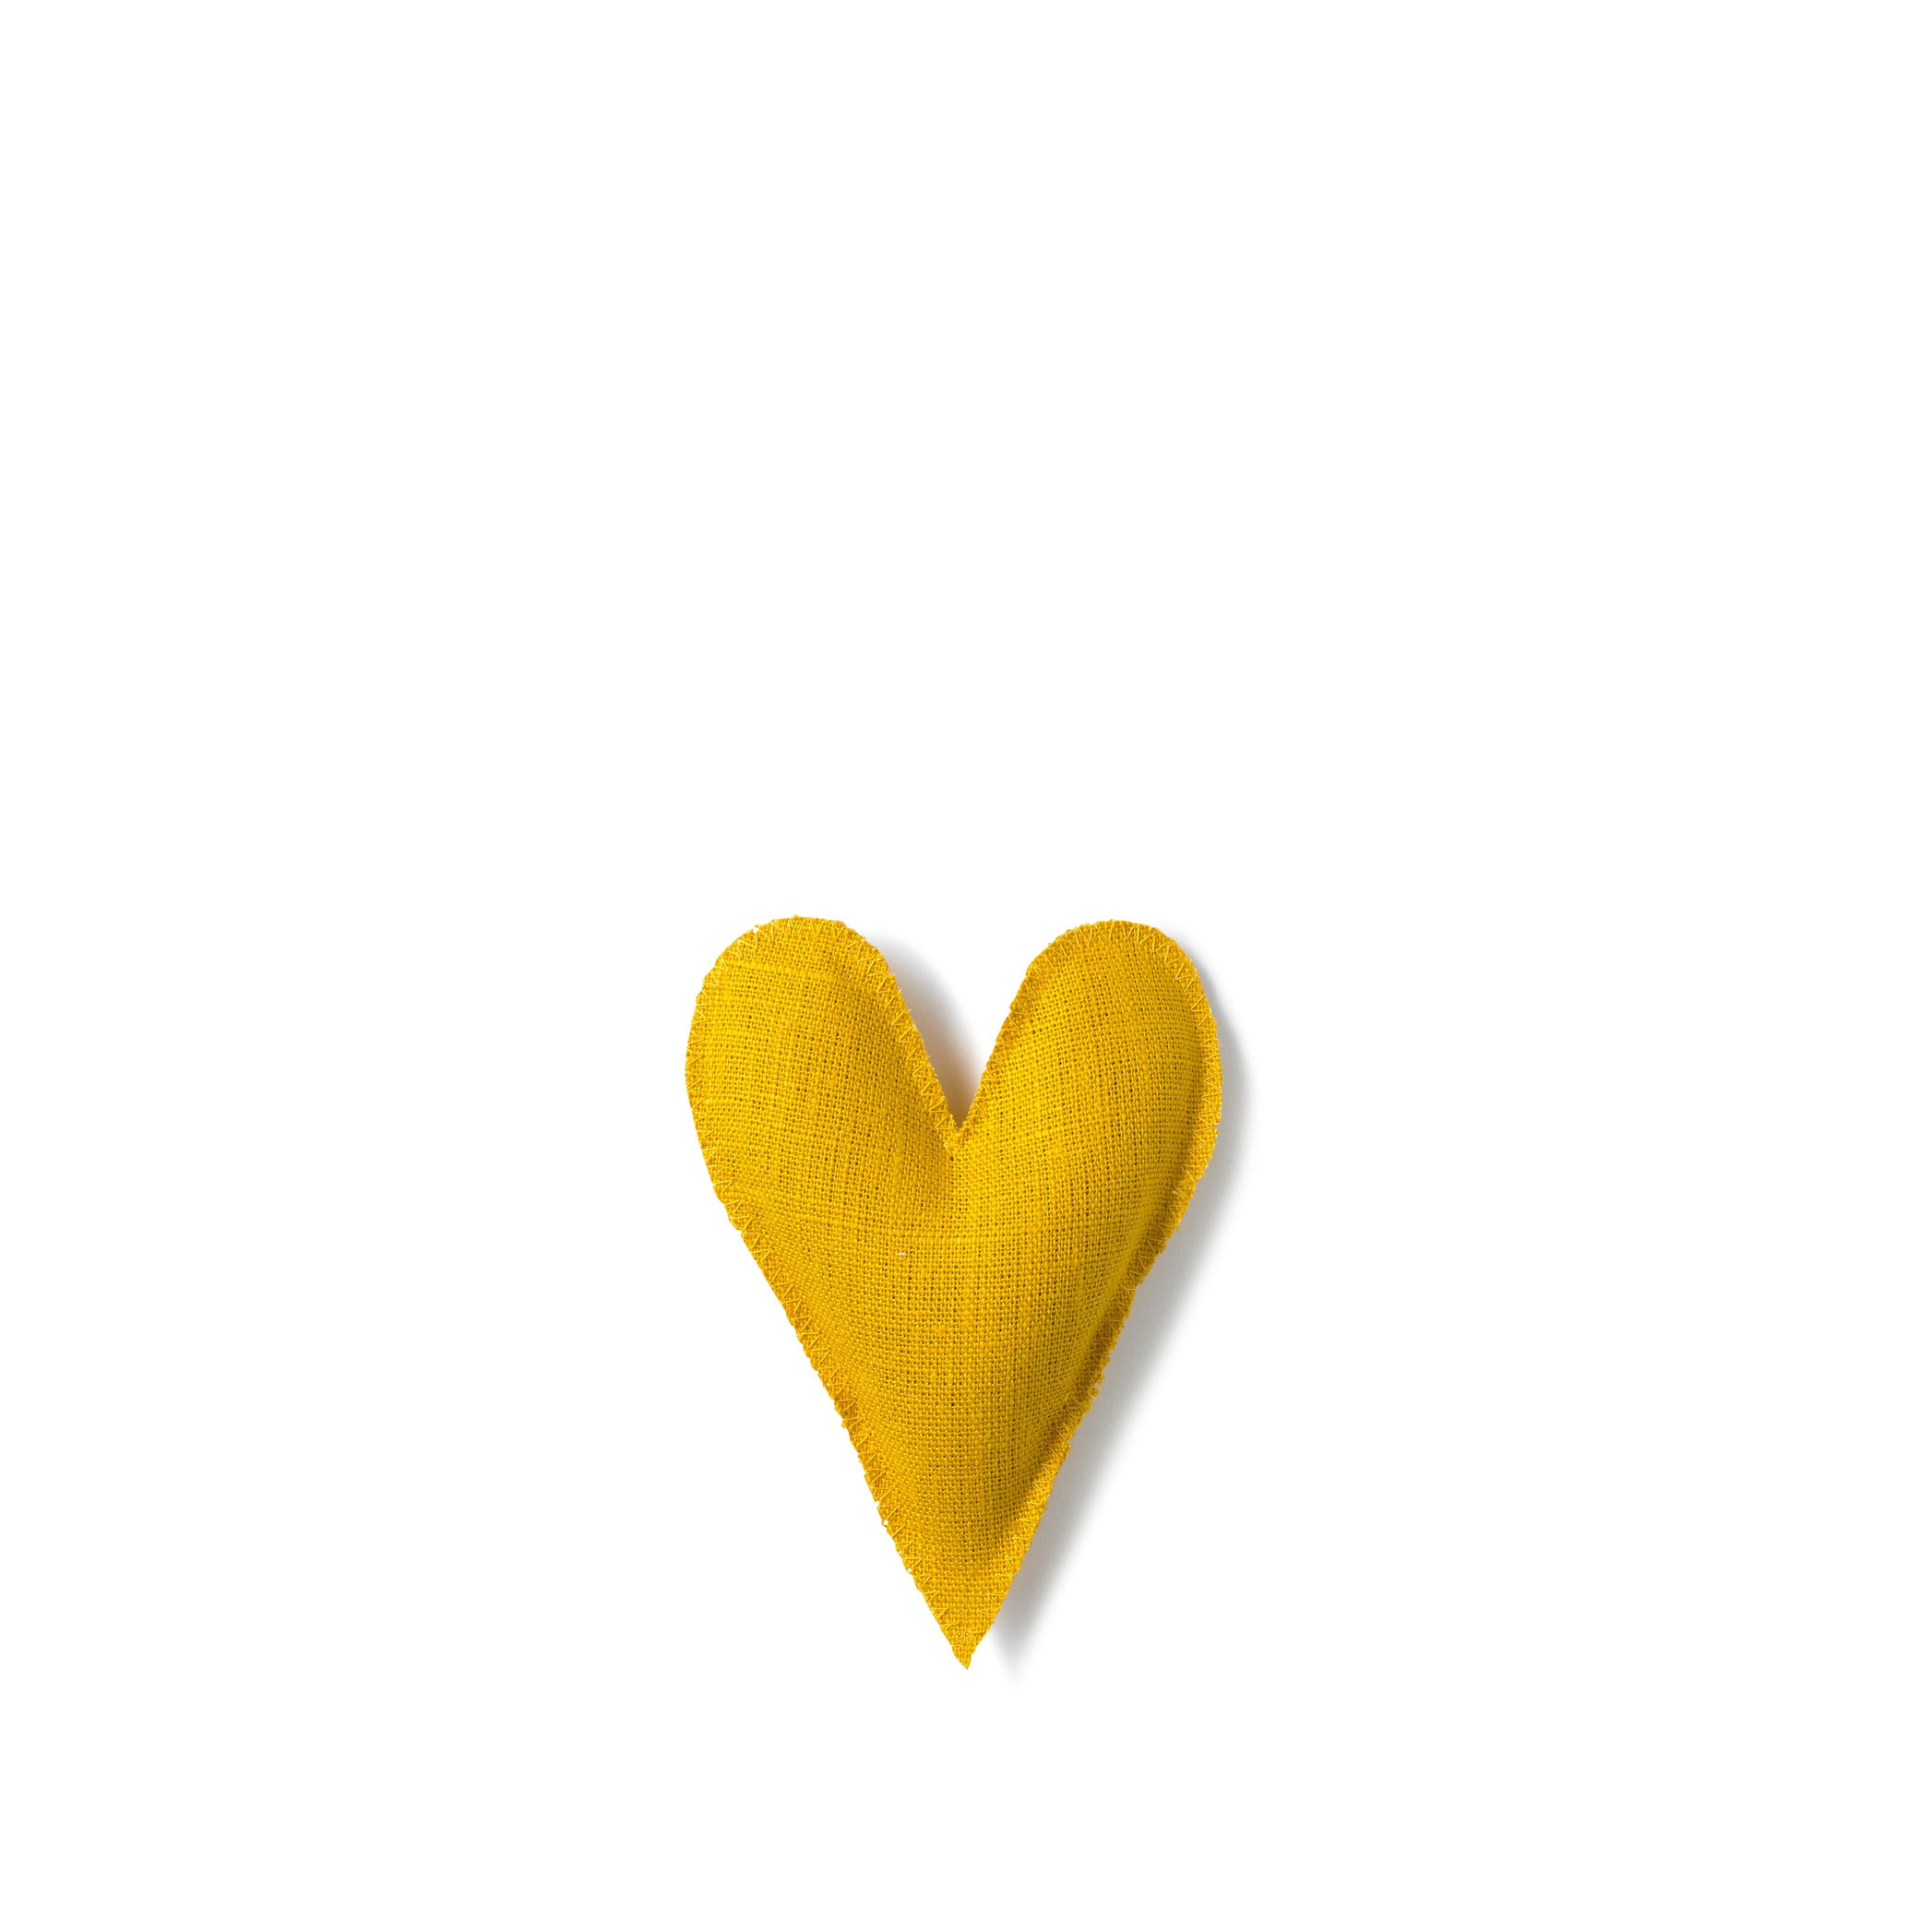 Lavender Heart in Yellow